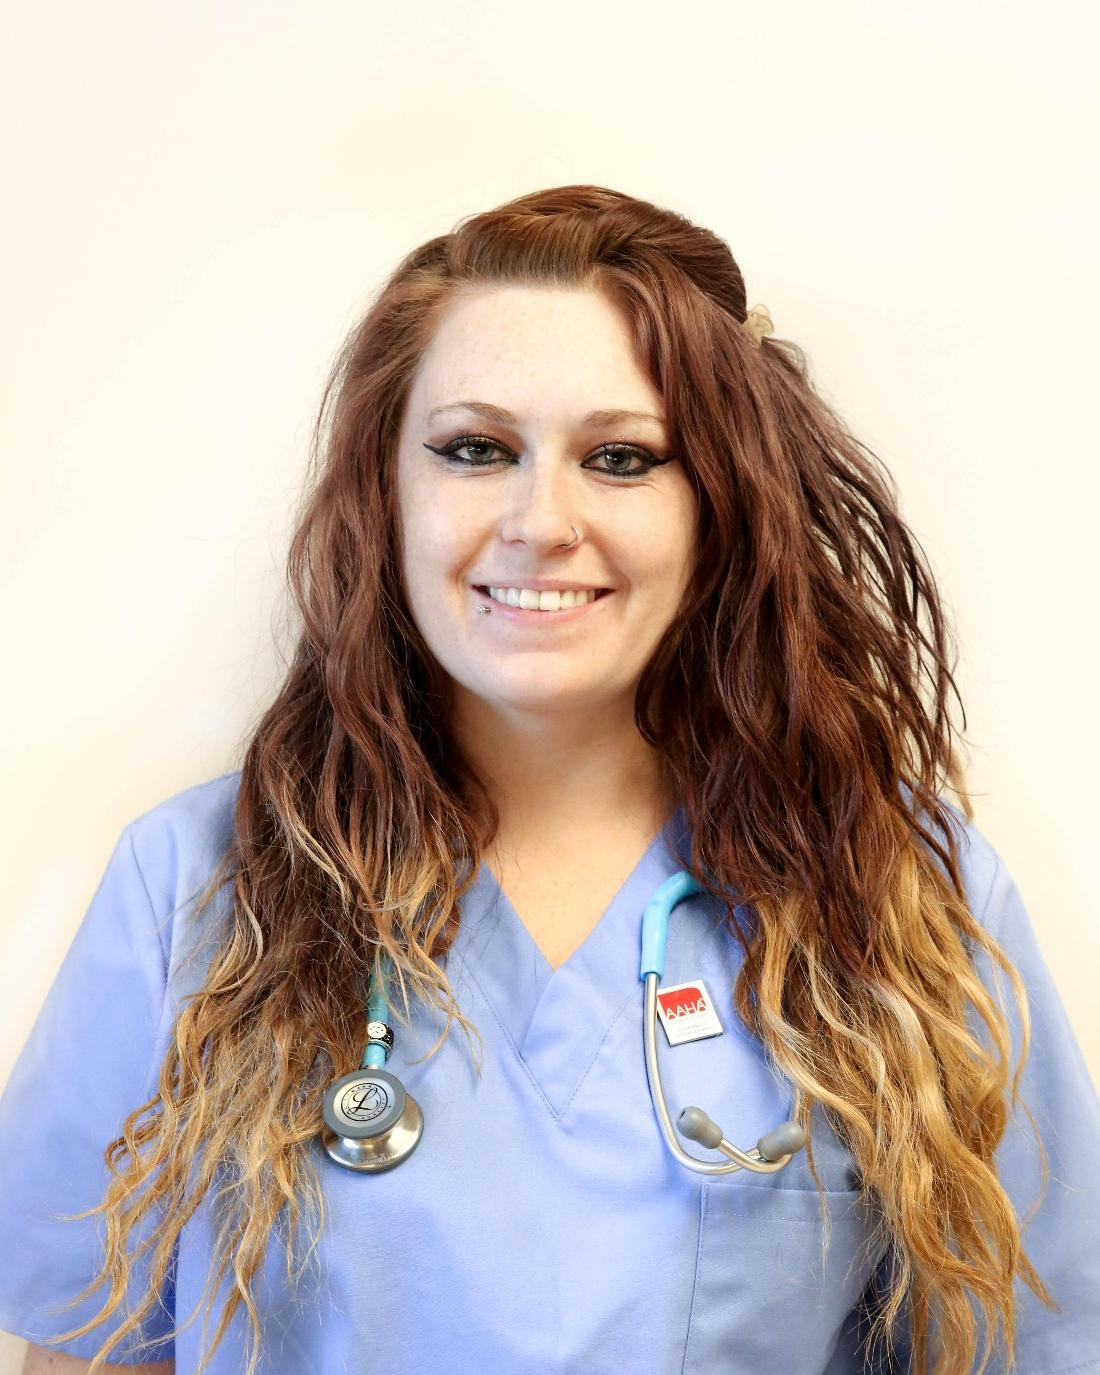 Sam Certified Veterinary Technician